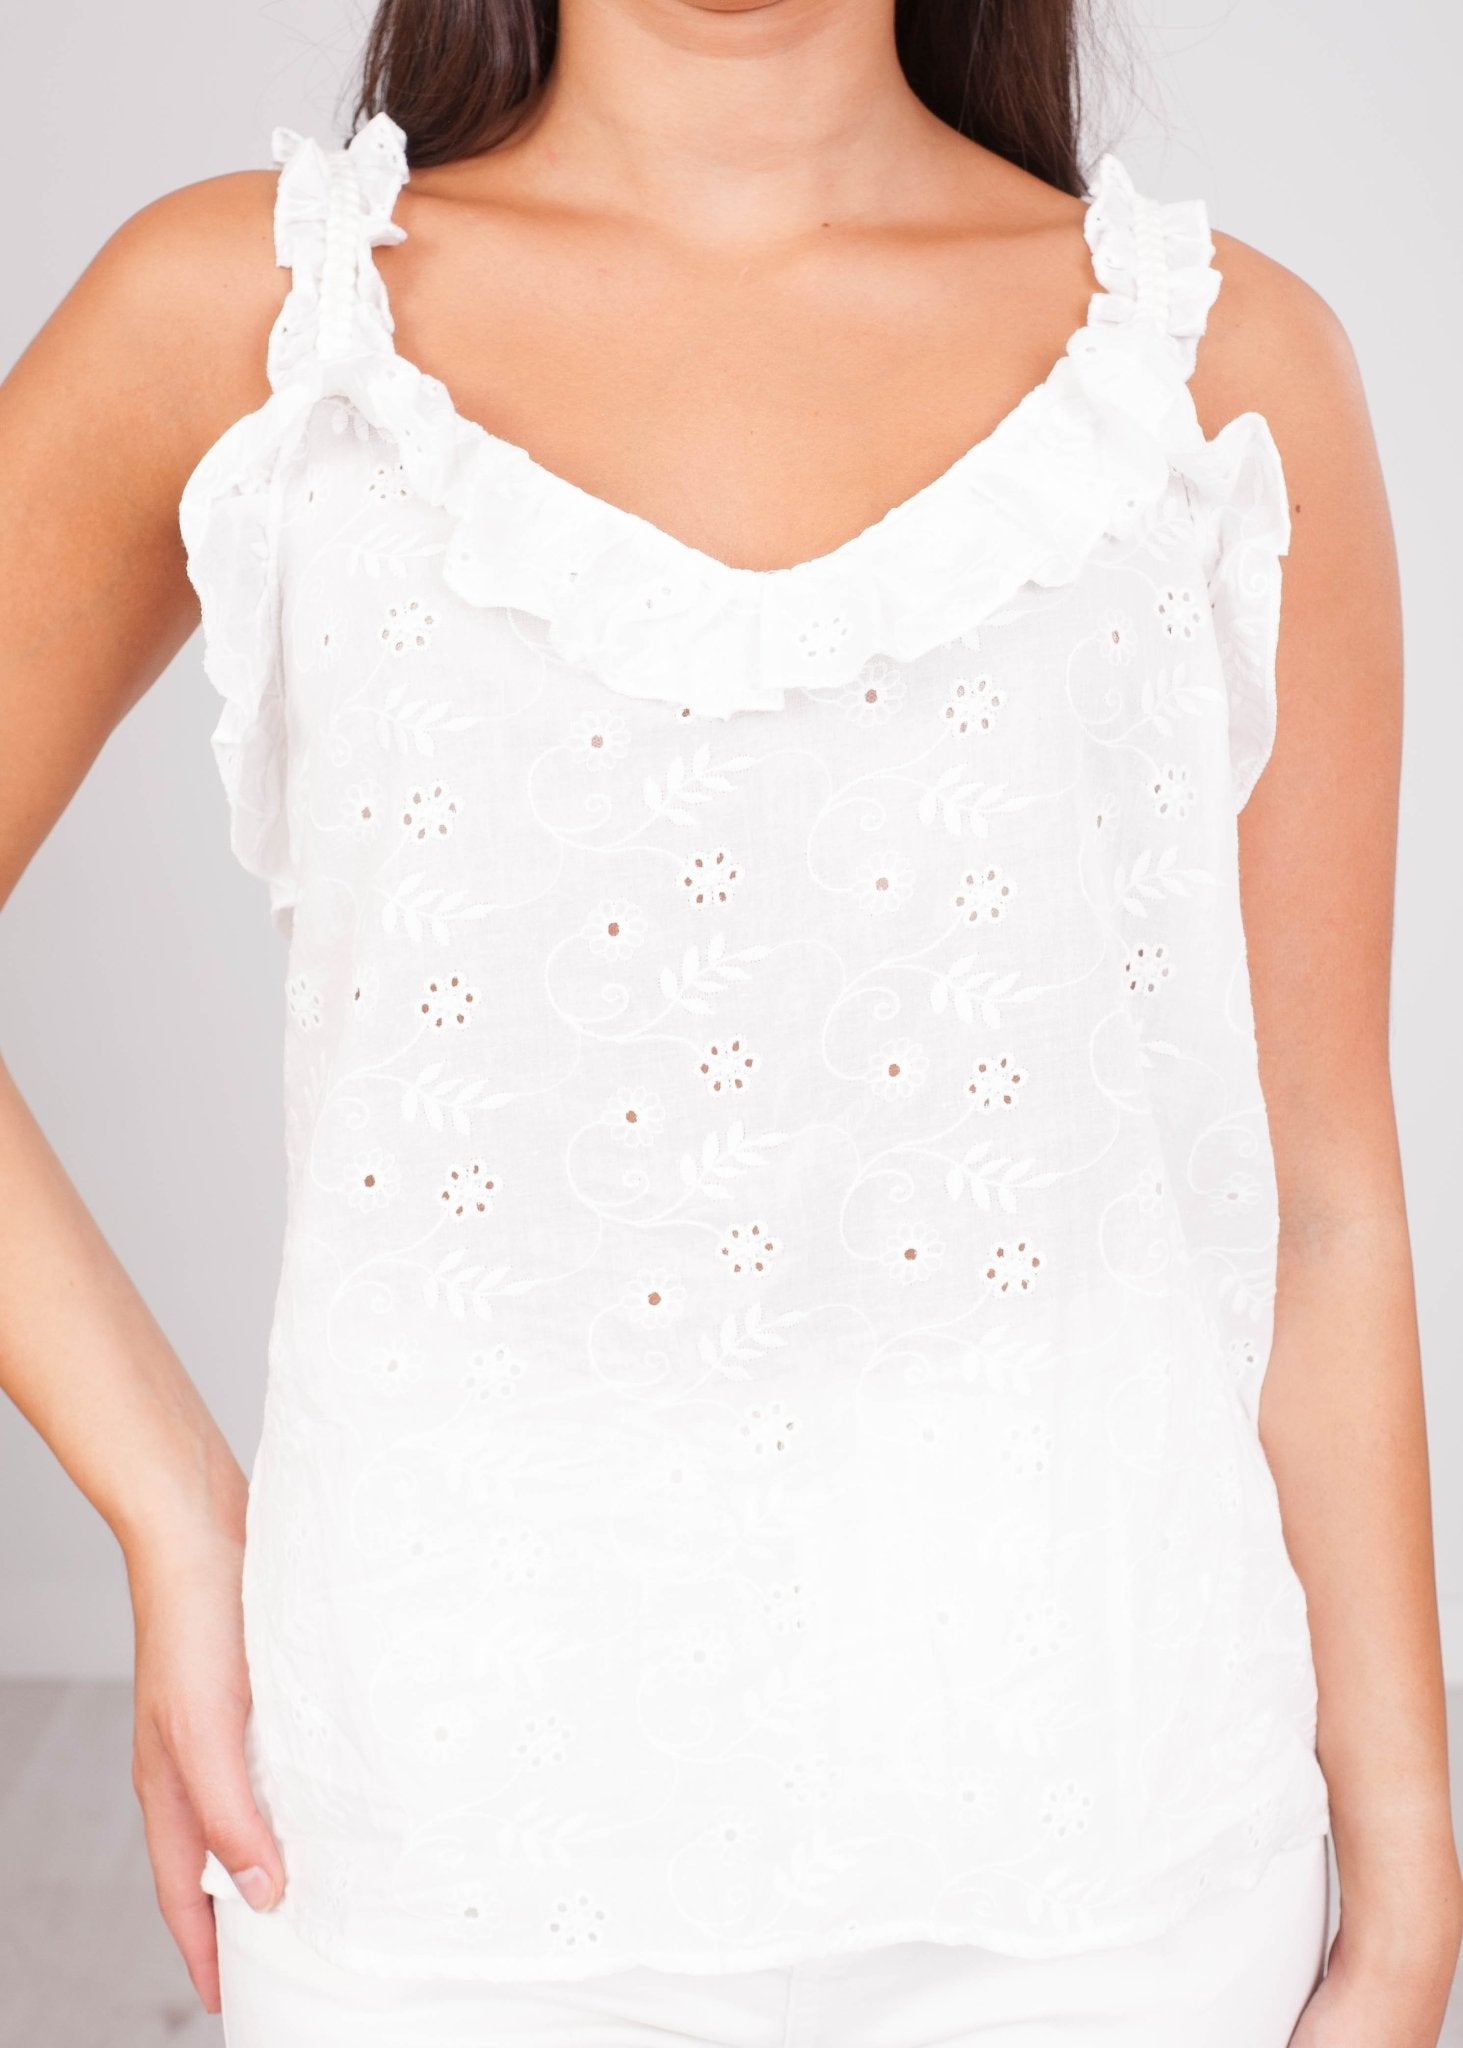 Cherie Embroidered Top - The Walk in Wardrobe